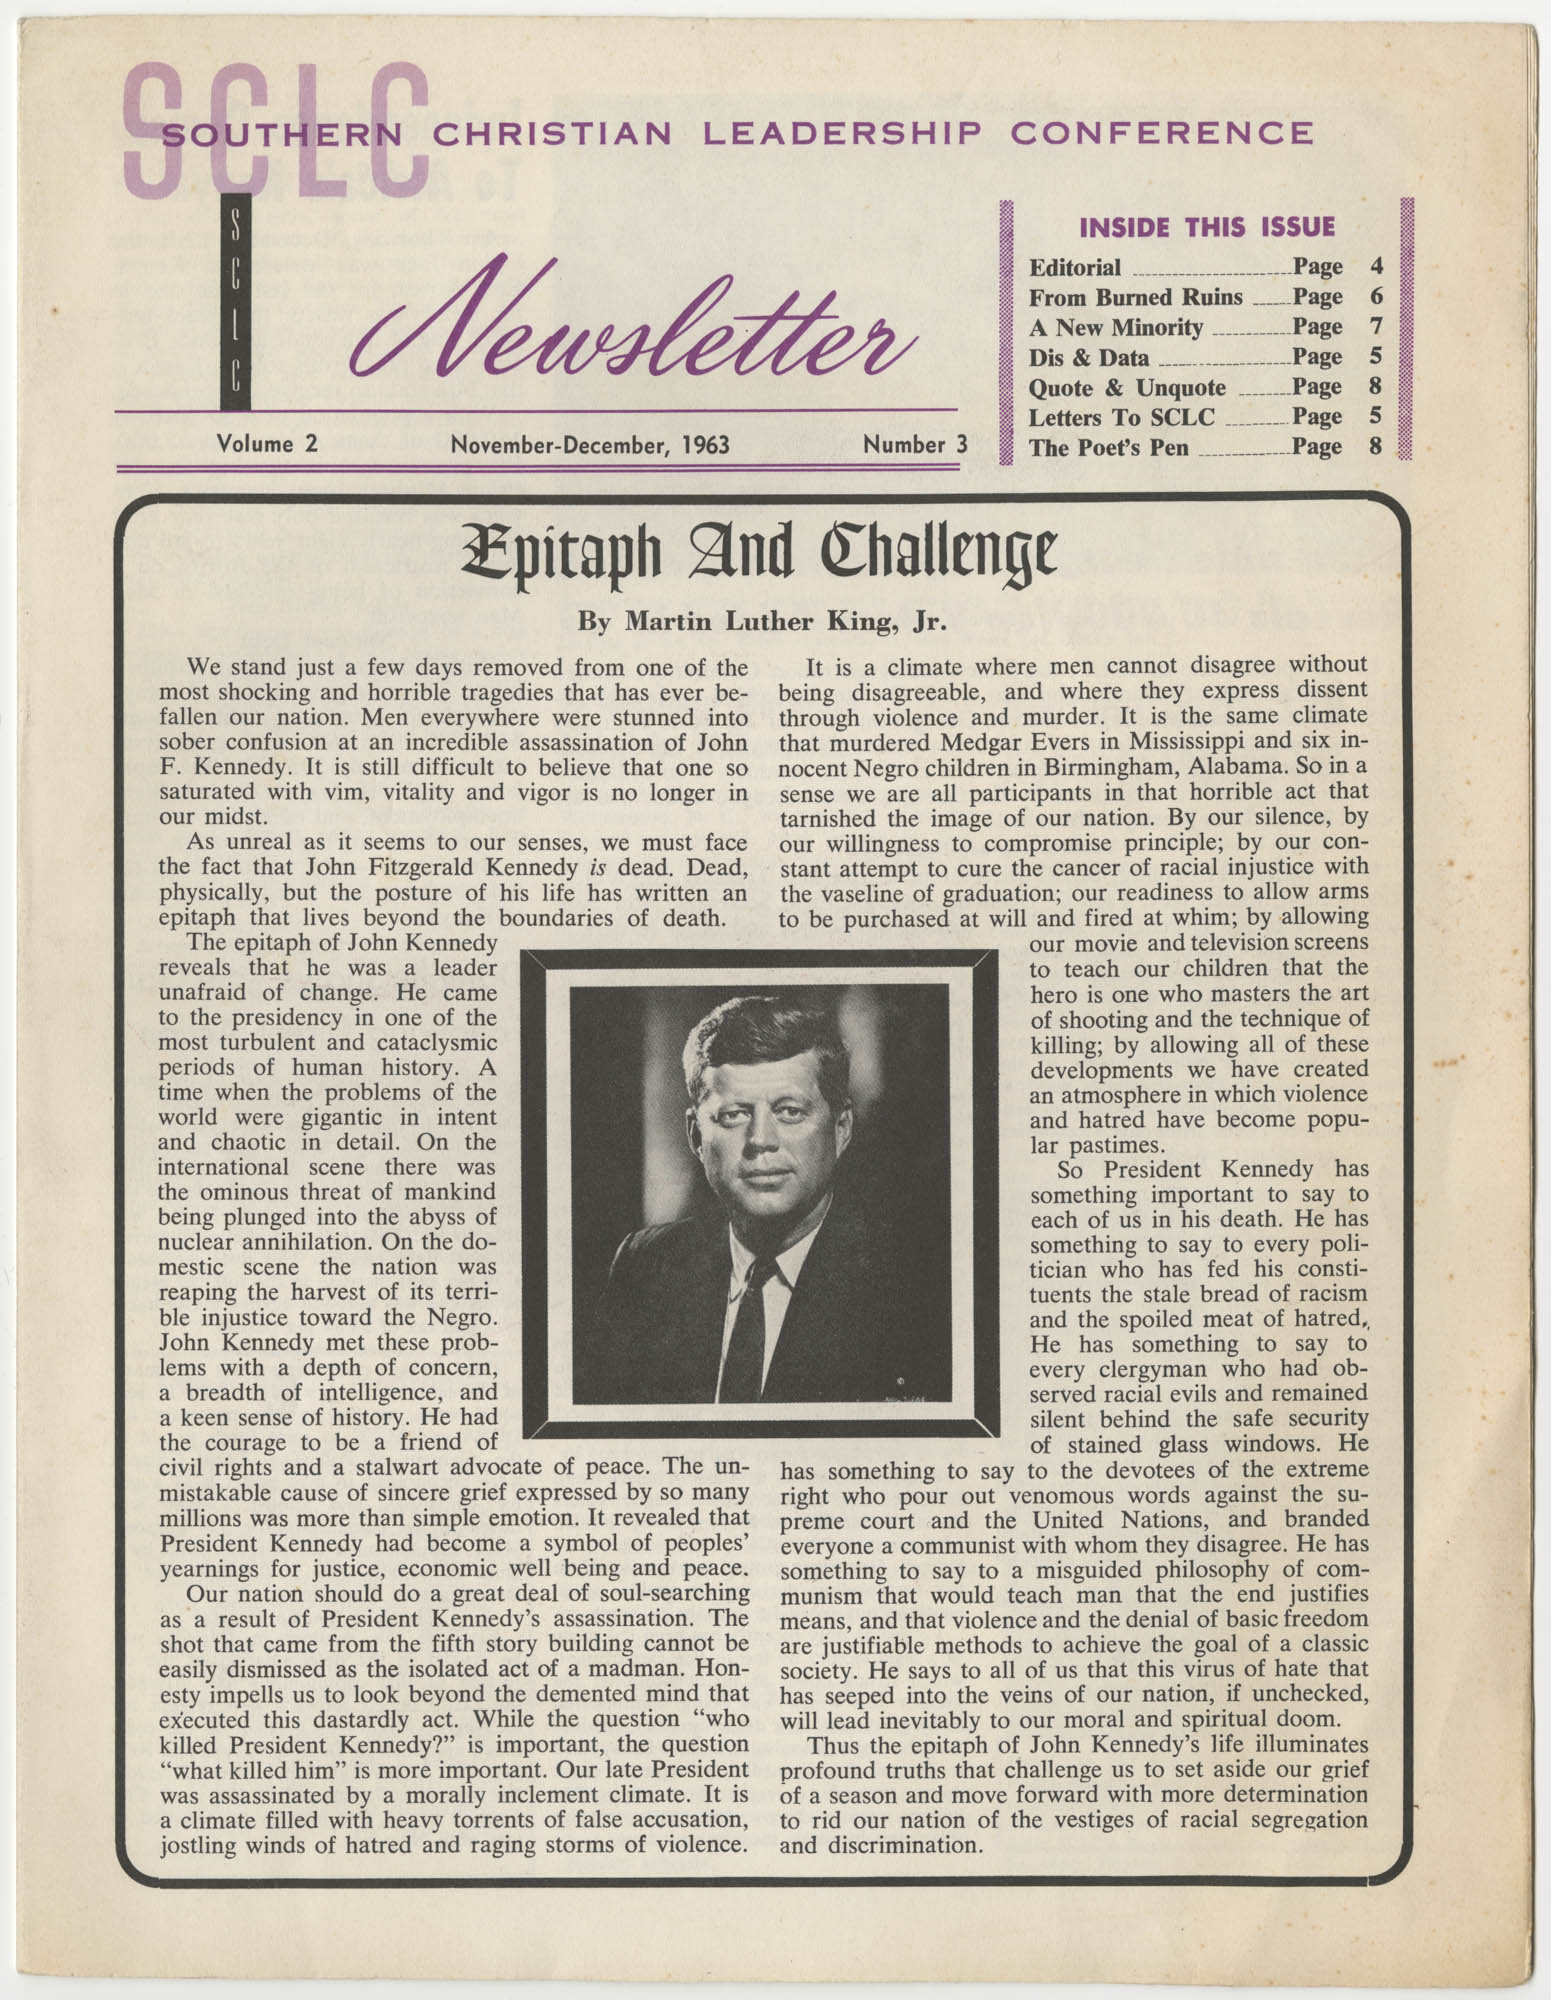 Southern Christian Leadership Conference Newsletter, Volume 2, Number 3, November-December, 1963, Page 1